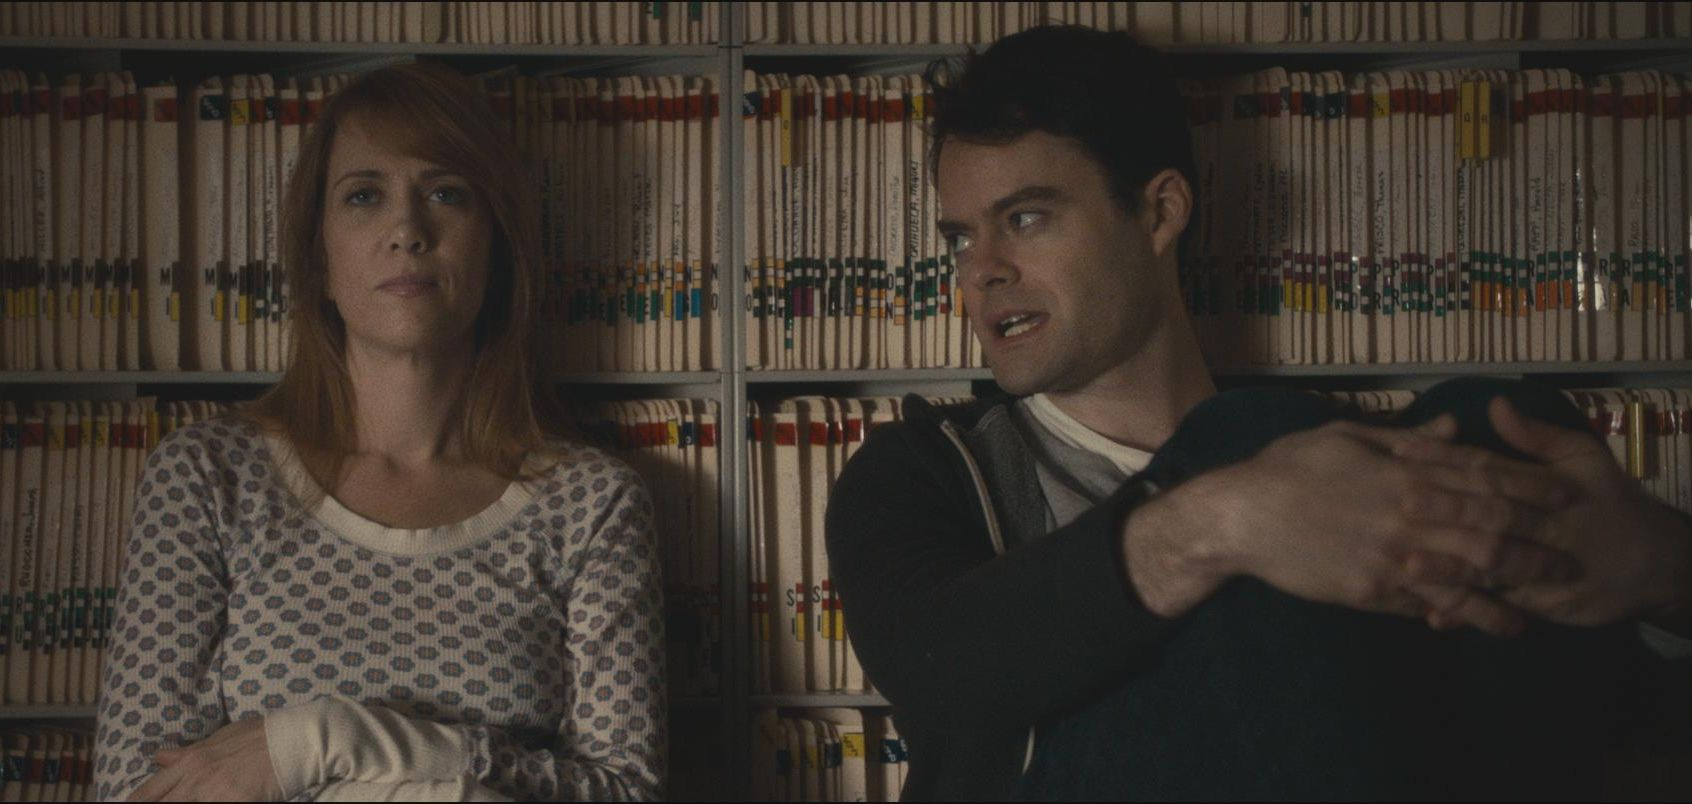 Talking in front of some files, The Skeleton Twins